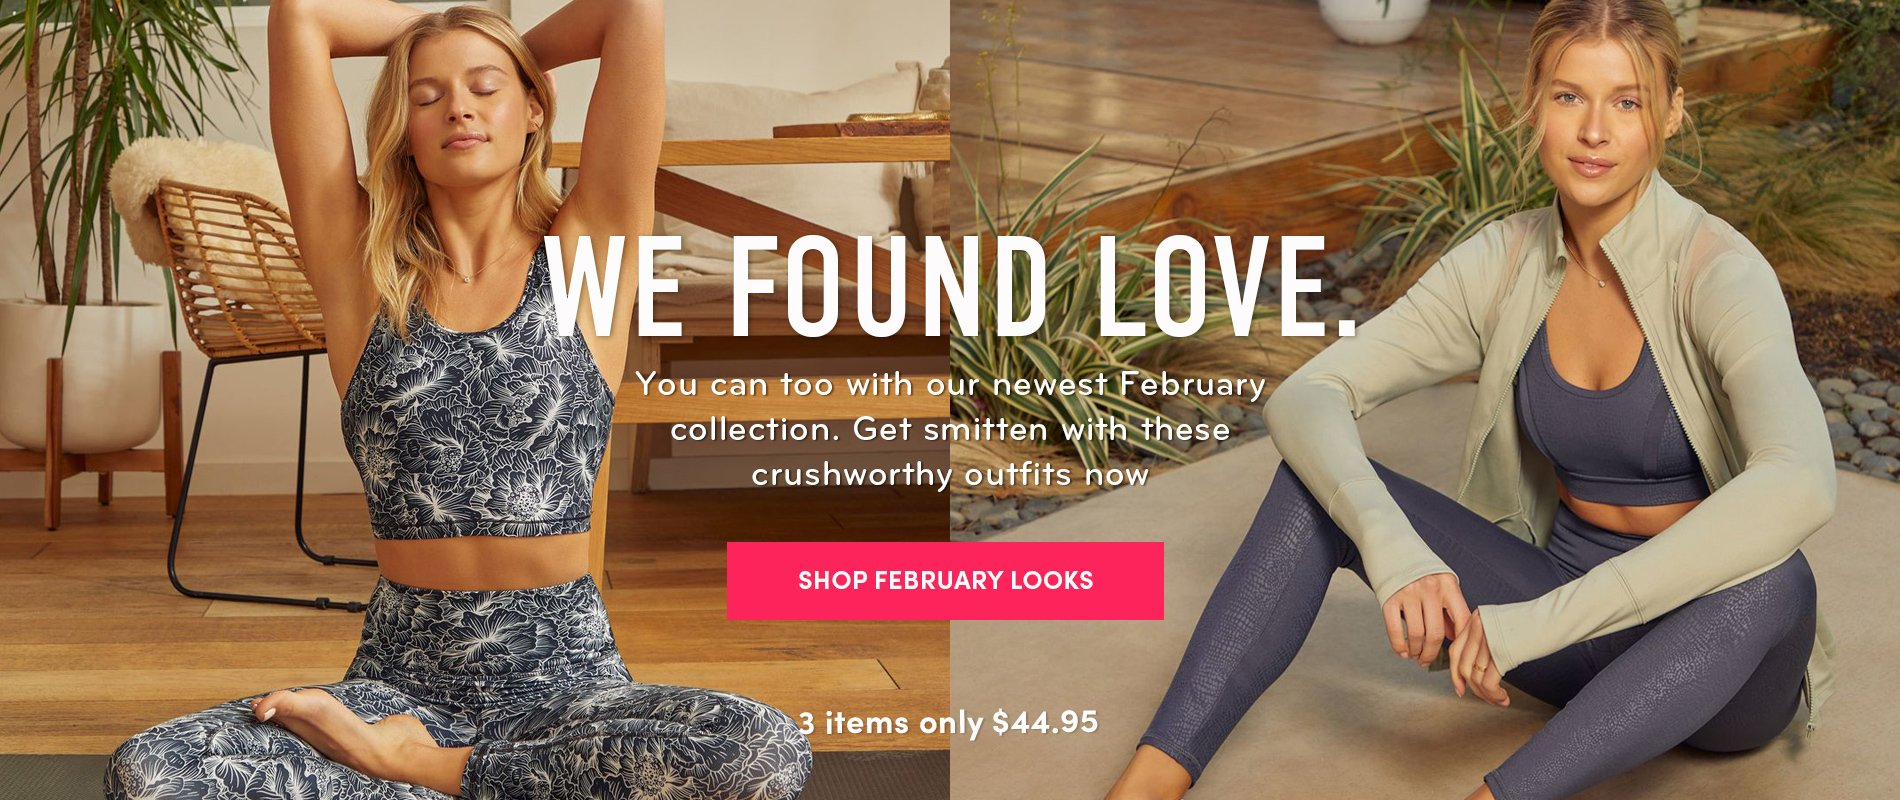 Ellie Women's Fitness Subscription Box – February 2021 Reveal + Coupon Code!